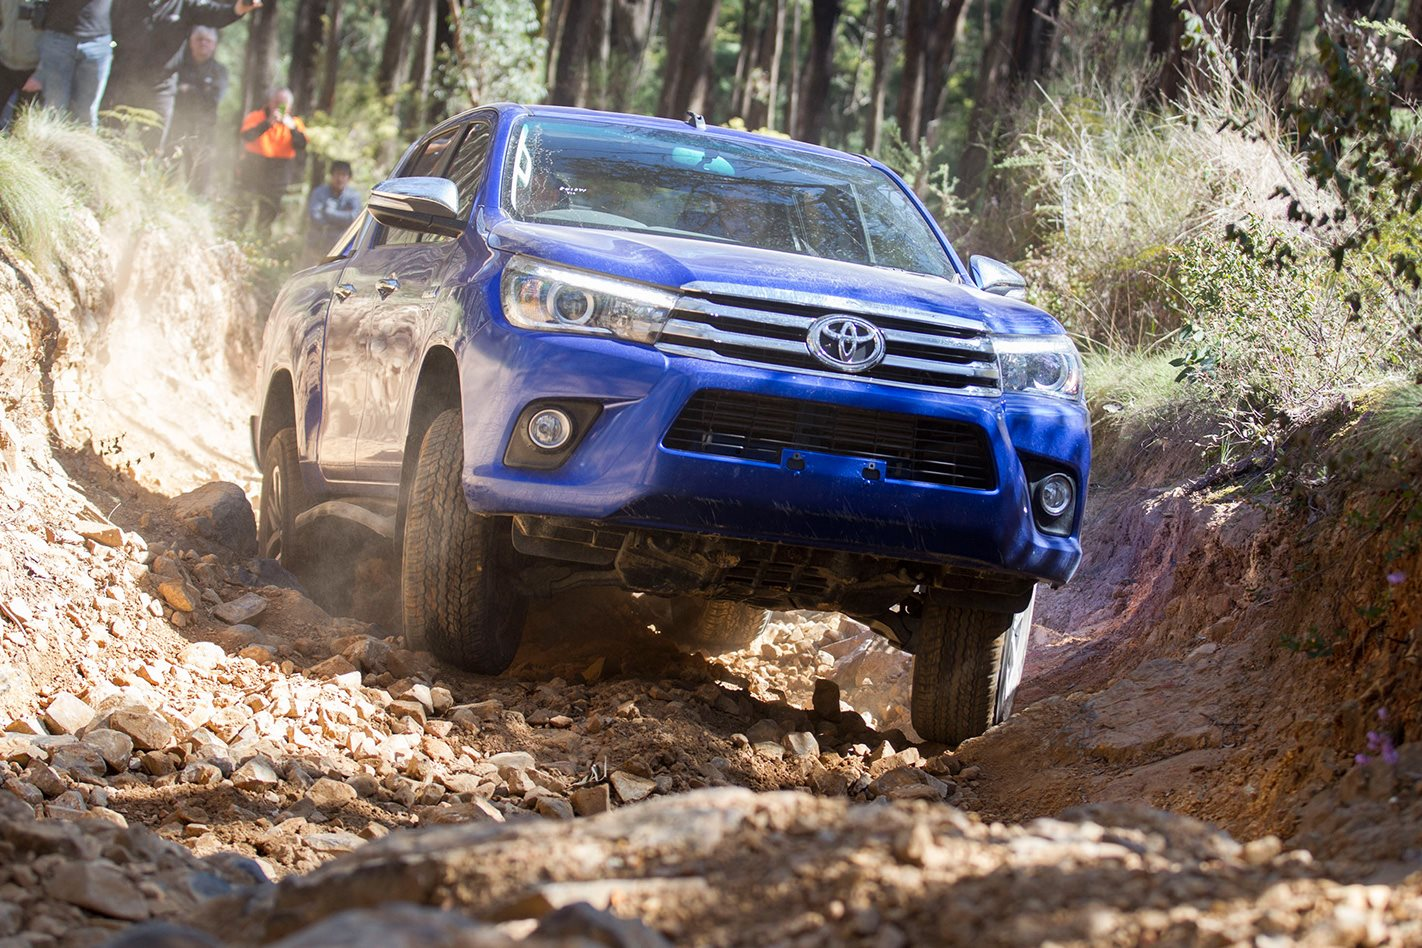 2016 Toyota Hilux off-road review